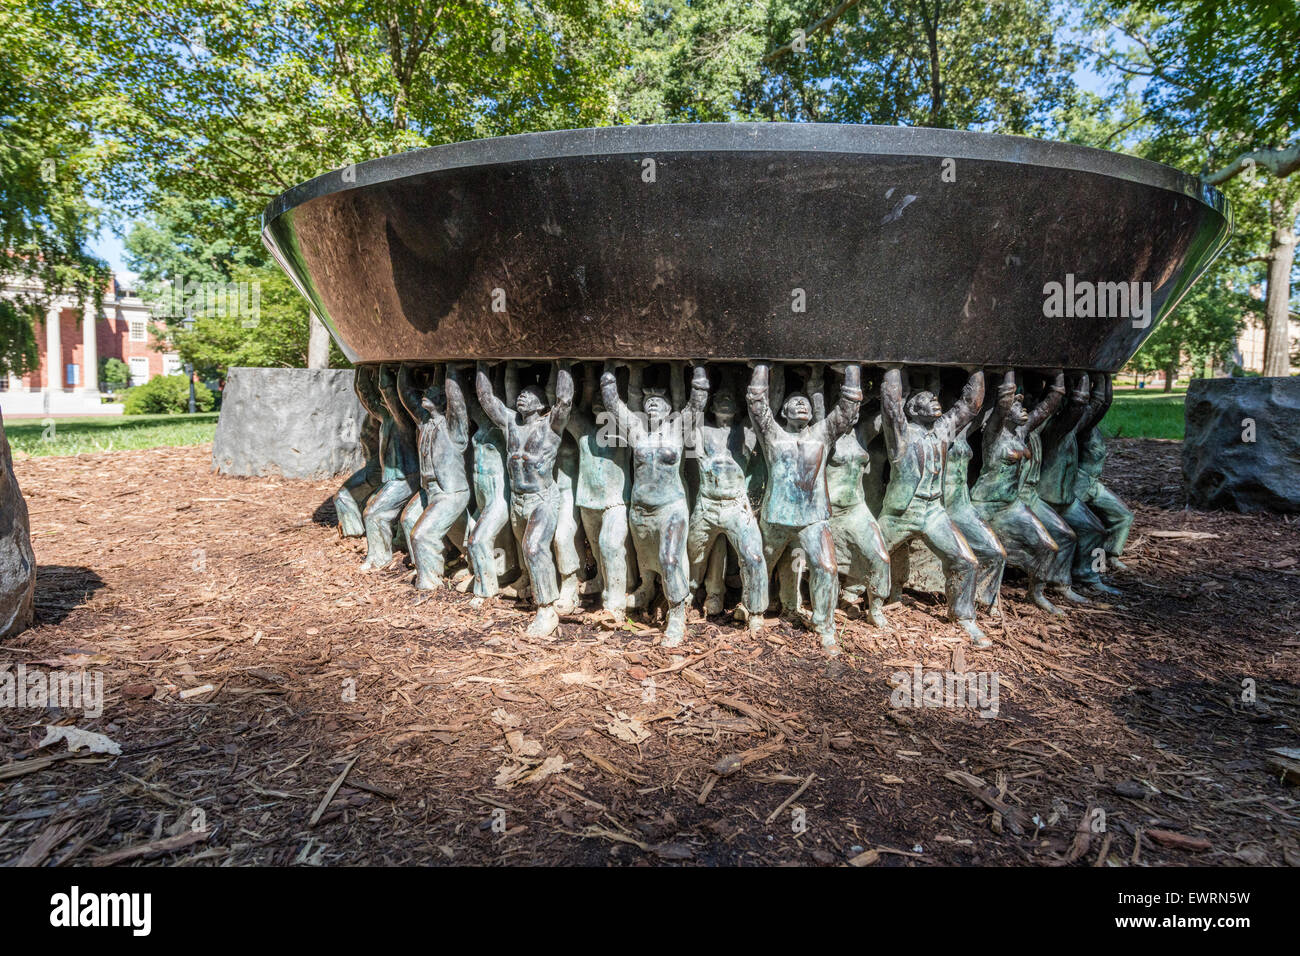 Unsung Founders Memorial on the campus of the University of North Carolina, Chapel Hill. - Stock Image